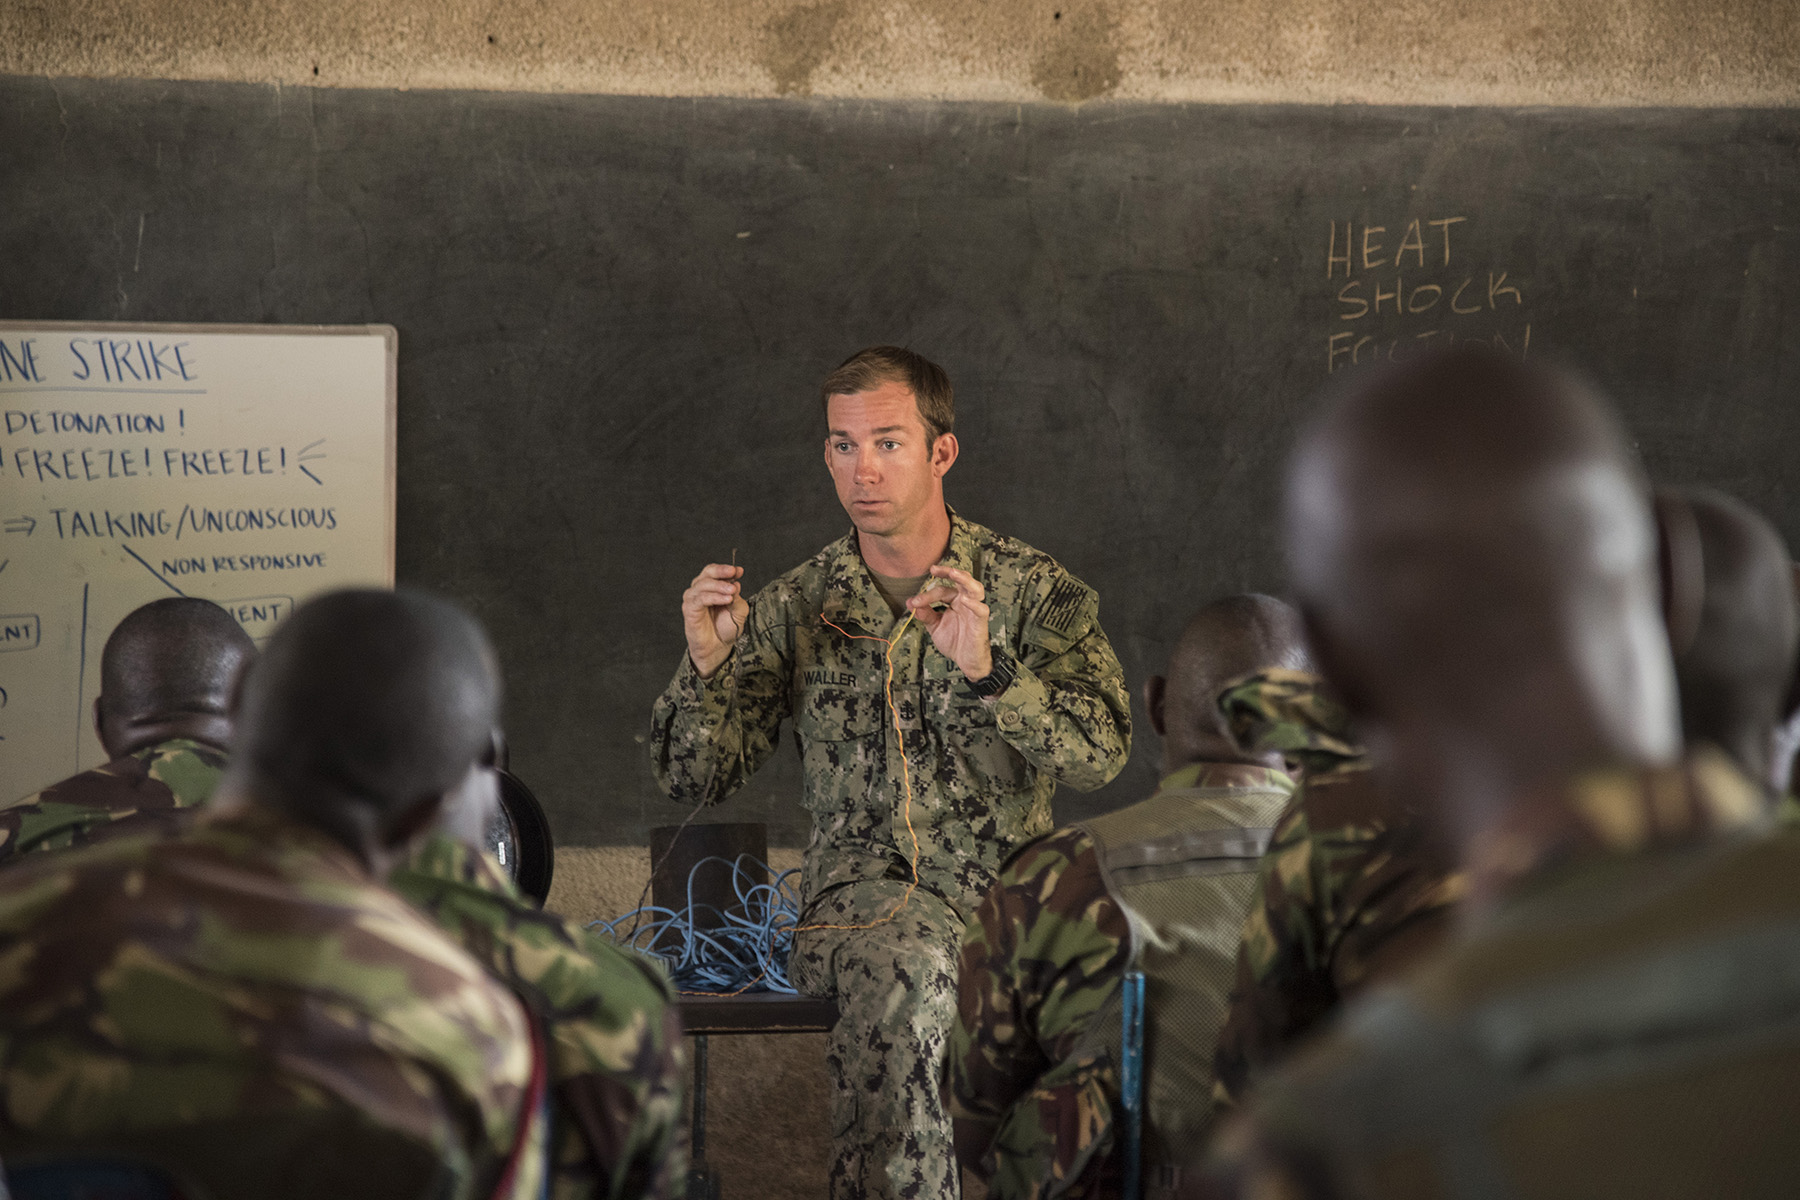 KENYA- U.S. Navy Chief Petty Officer Ryan Waller, assigned to Task Force Sparta and senior instructor for Deliberate Kindle 2016, teaches Kenya Defense Forces combat engineer soldiers and officers on the difference between electric and non-electric explosives during Deliberate Kindle 2016, Sept. 16, at a training center in Kenya. Deliberate Kindle is a four-week counter-improvised explosive device course designed to provide C-IED, medical, and train-the-trainer skills to approximately 53 KDF soldiers in preparation for future deployments with the African Union Mission in Somalia. (U.S. Air Force photo by Staff Sgt. Tiffany DeNault)